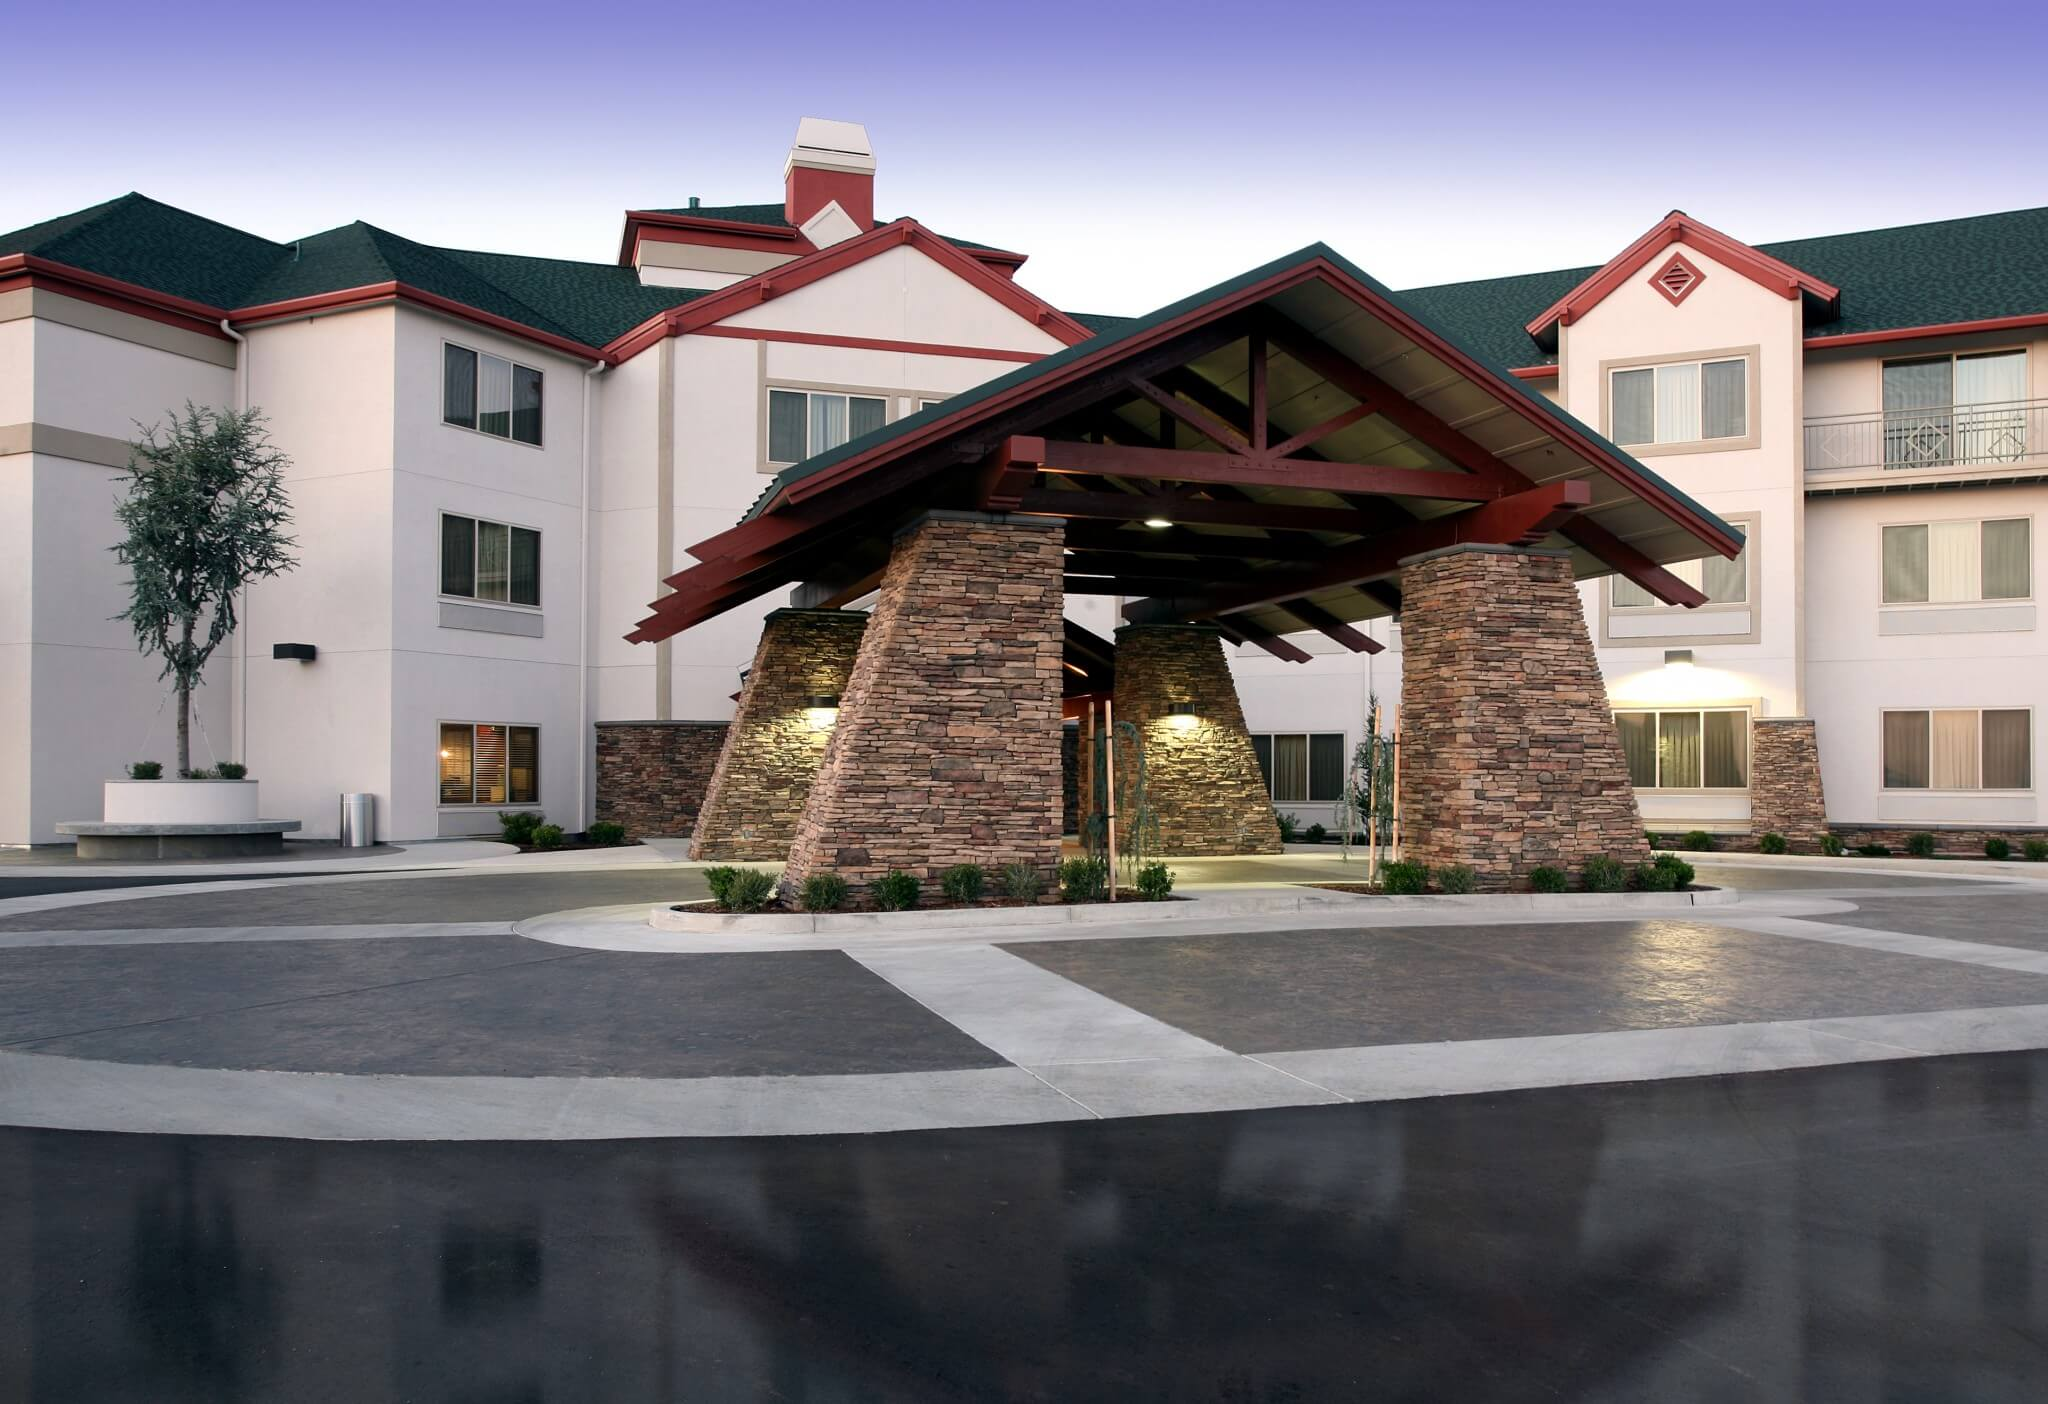 Feather falls casino & lodge